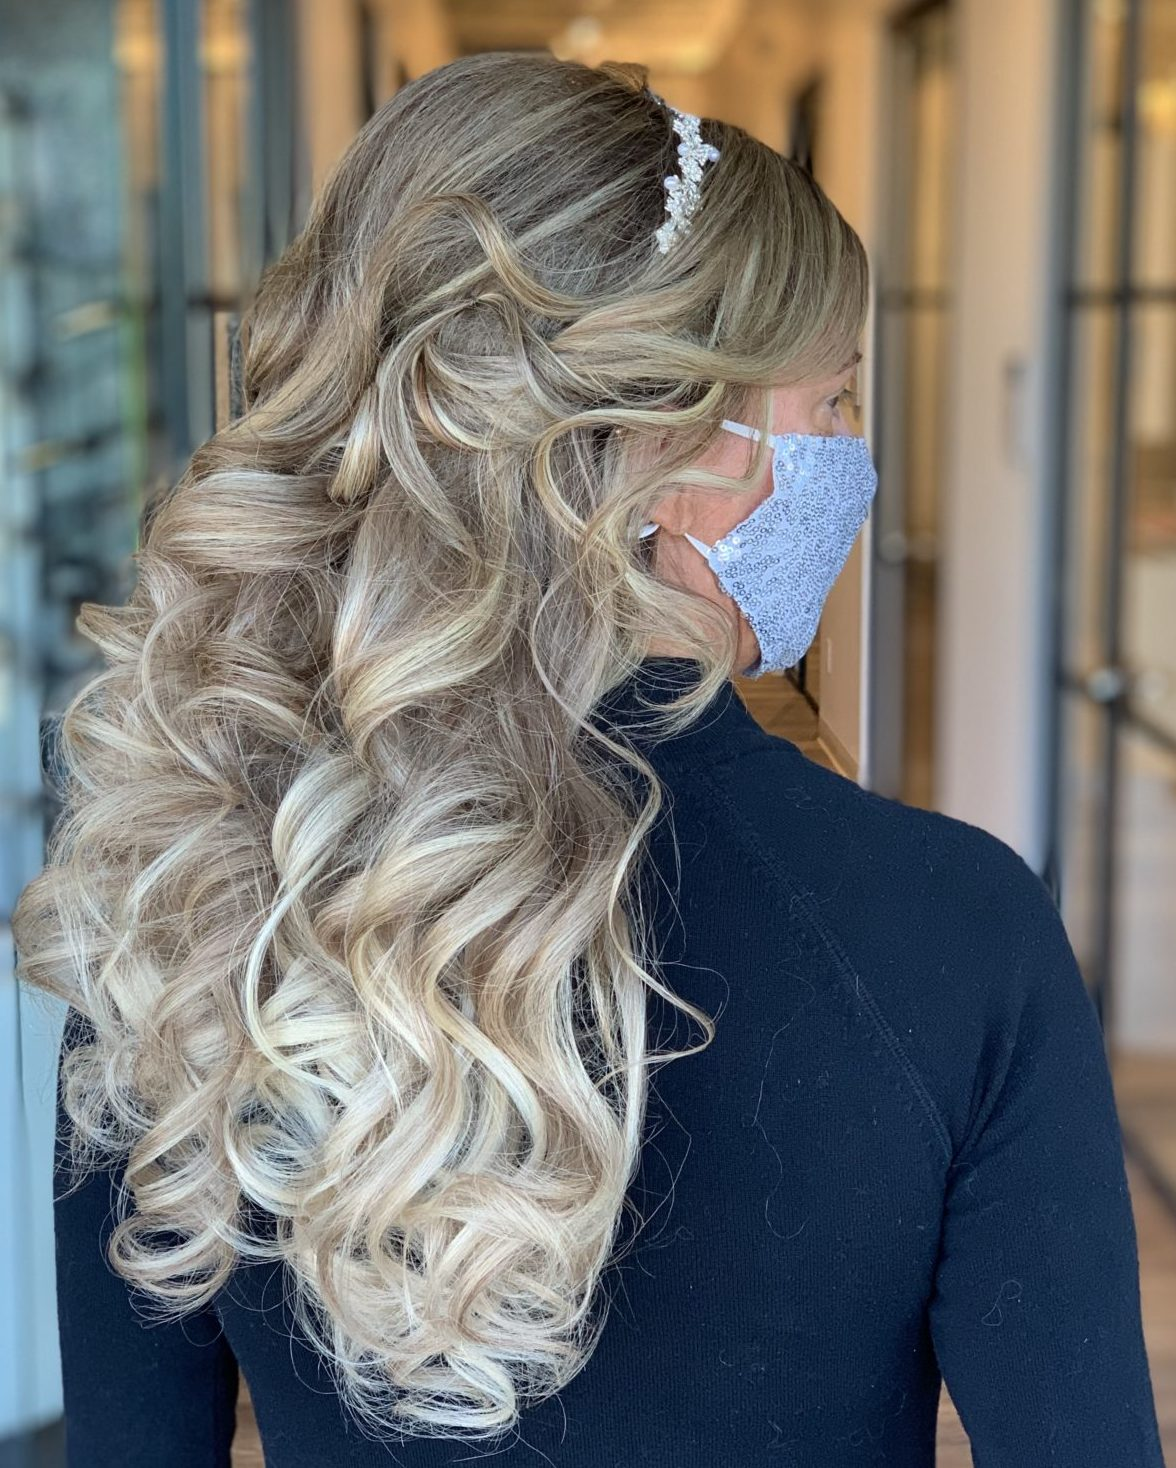 Prom hairstyles and makeup in Denver at Glo Extensions